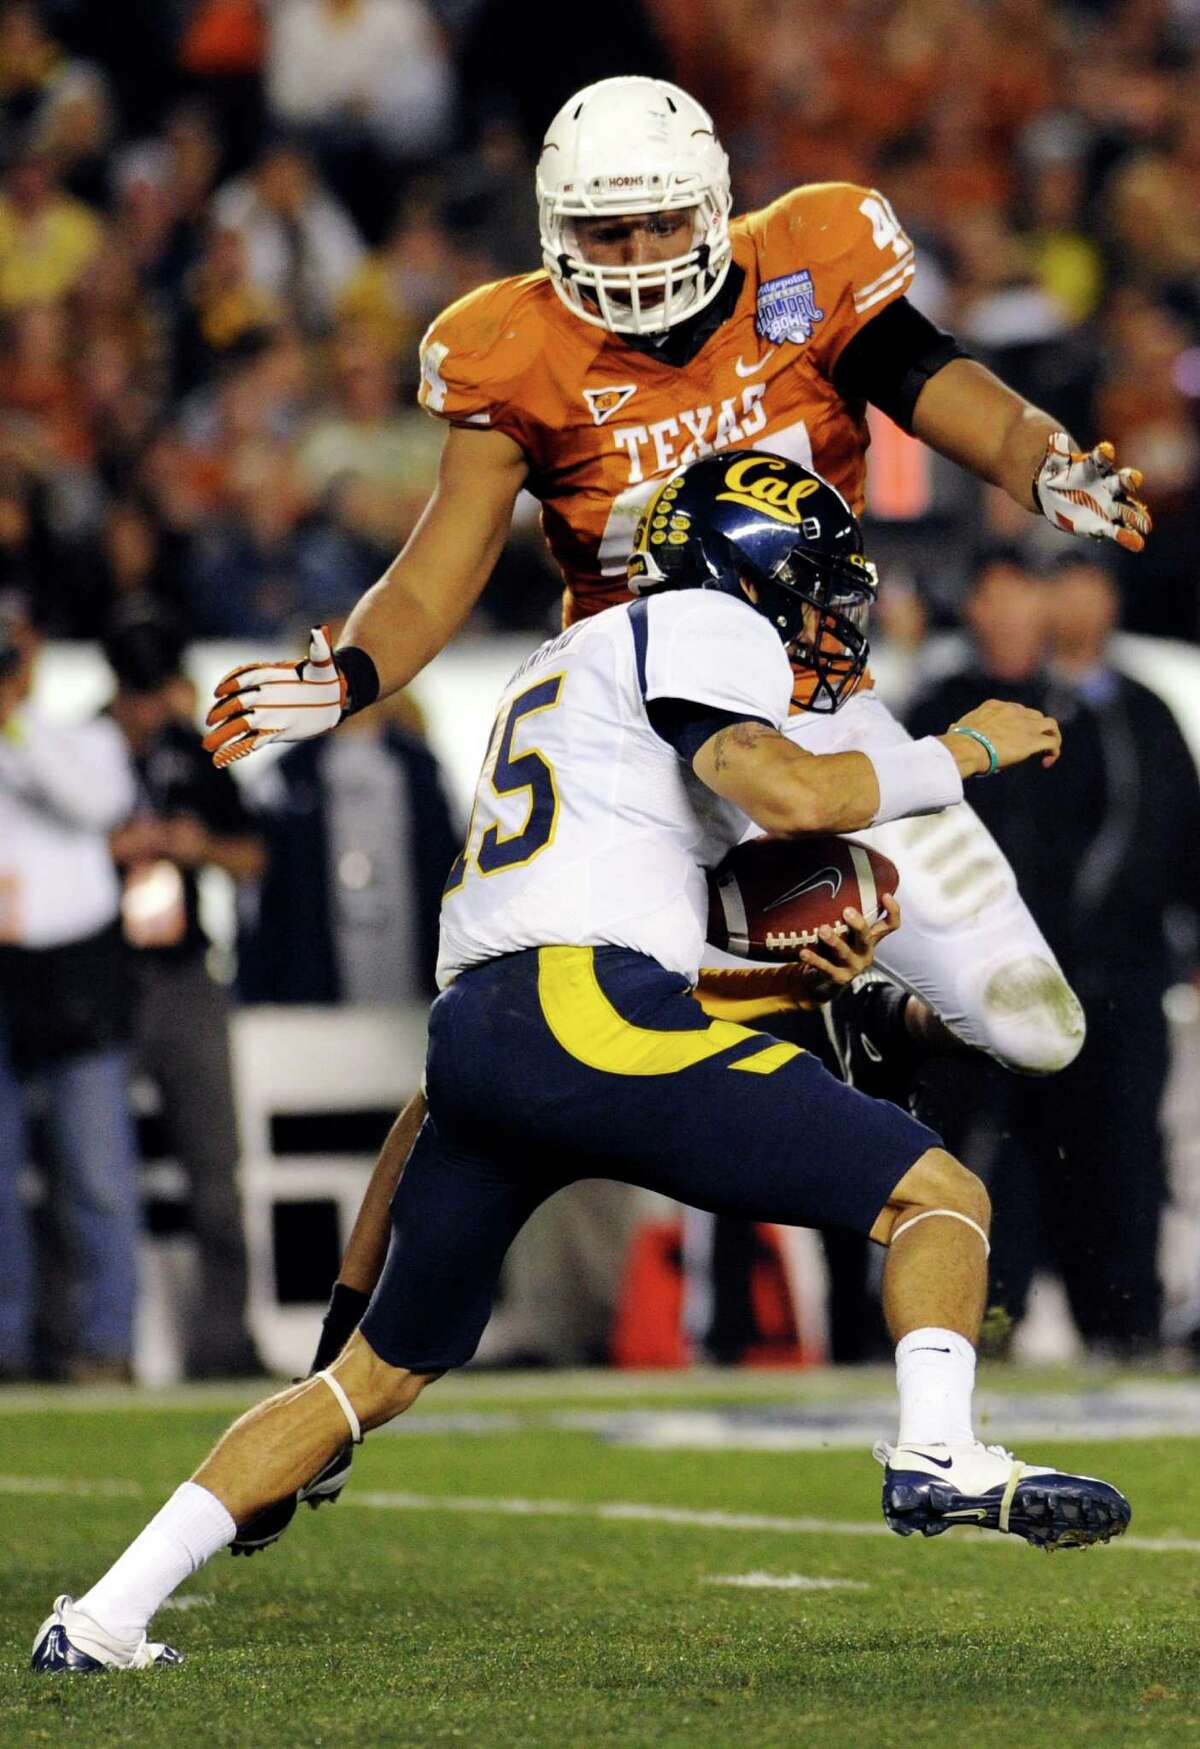 UT believes its defense will improve with a return to health by Jackson Jeffcoat and others.